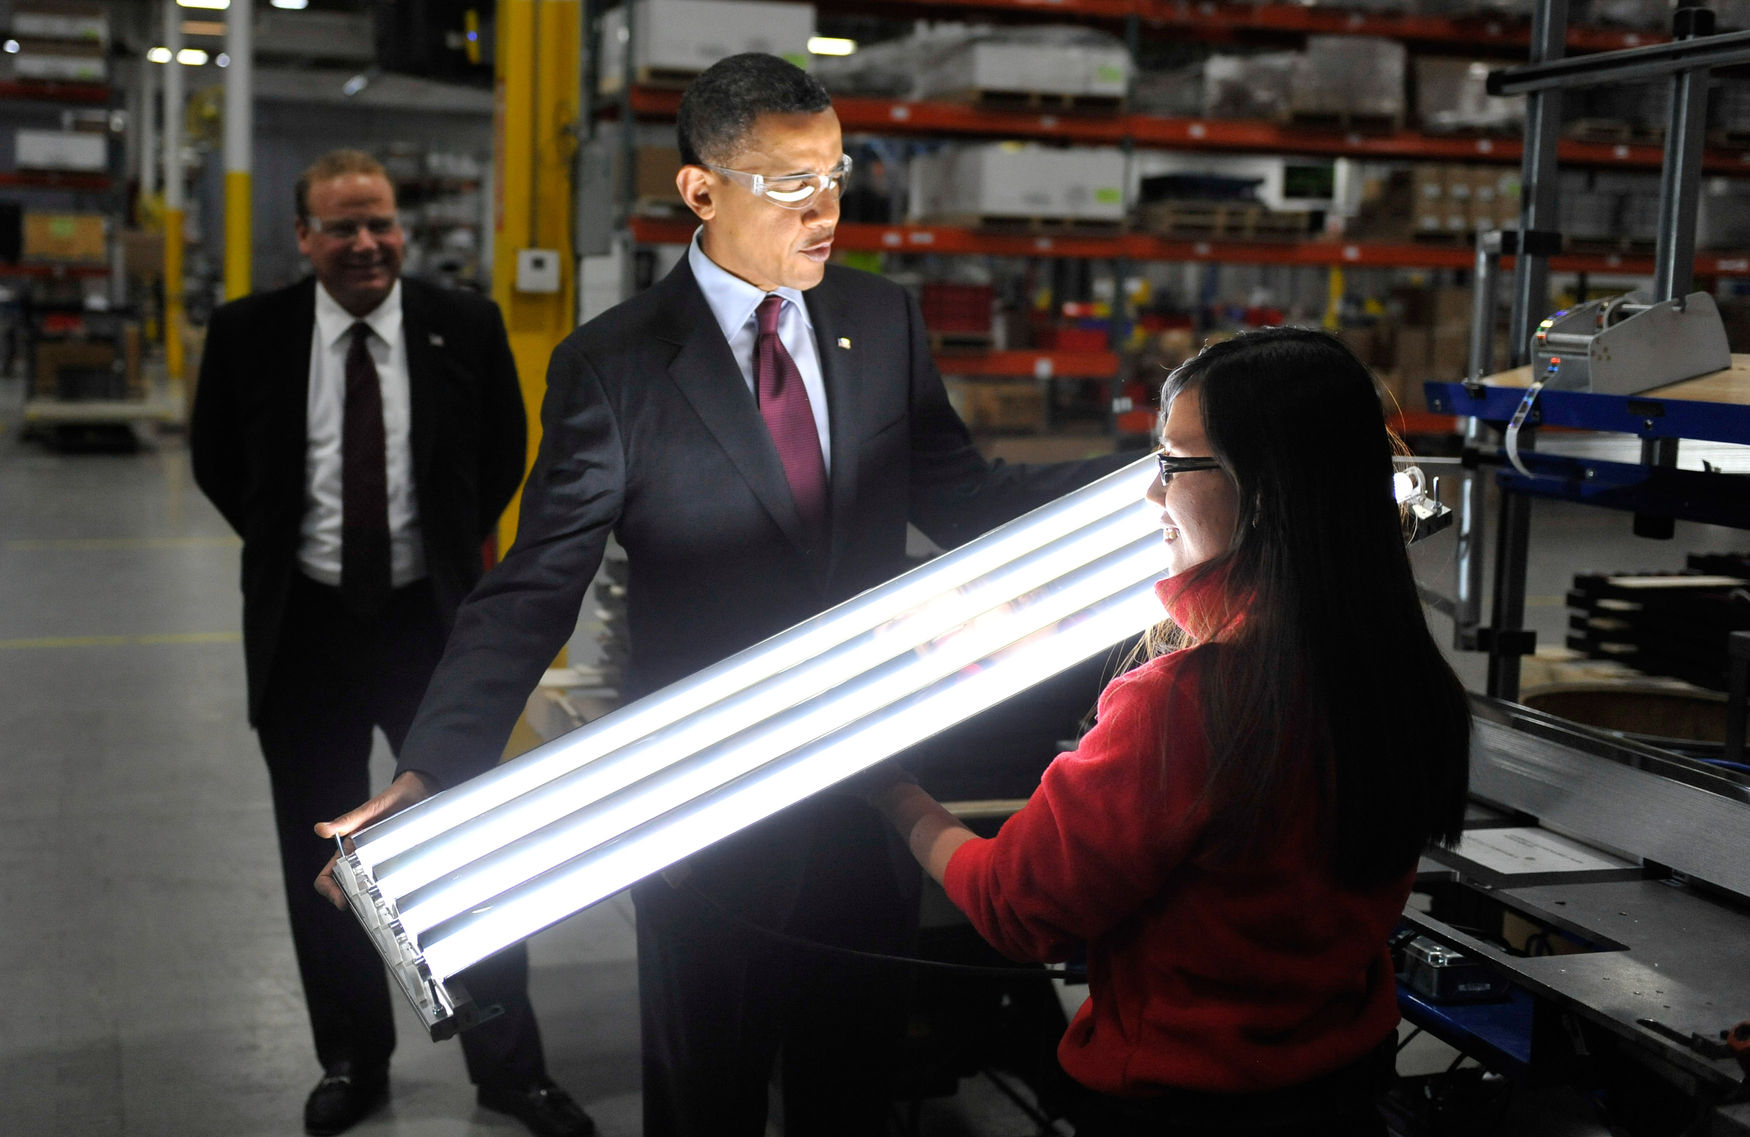 Obama tours Orion Energy plant in Manitowoc, Wisconsin